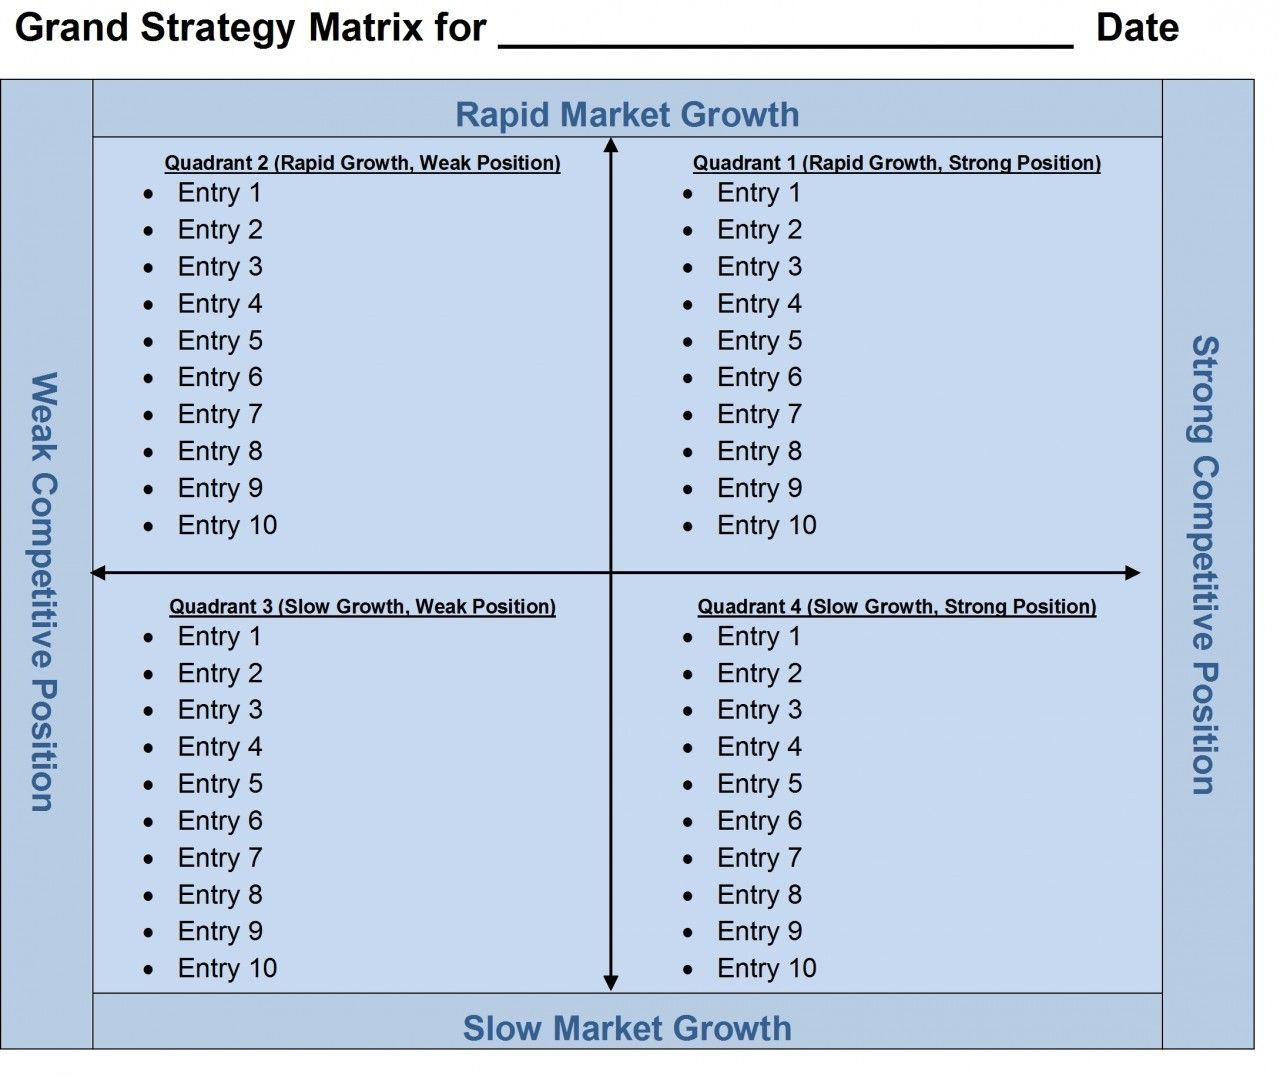 Grand Strategy Matrix Template For Word Strategic Planning Template Swot Analysis Template Strategic Planning Process